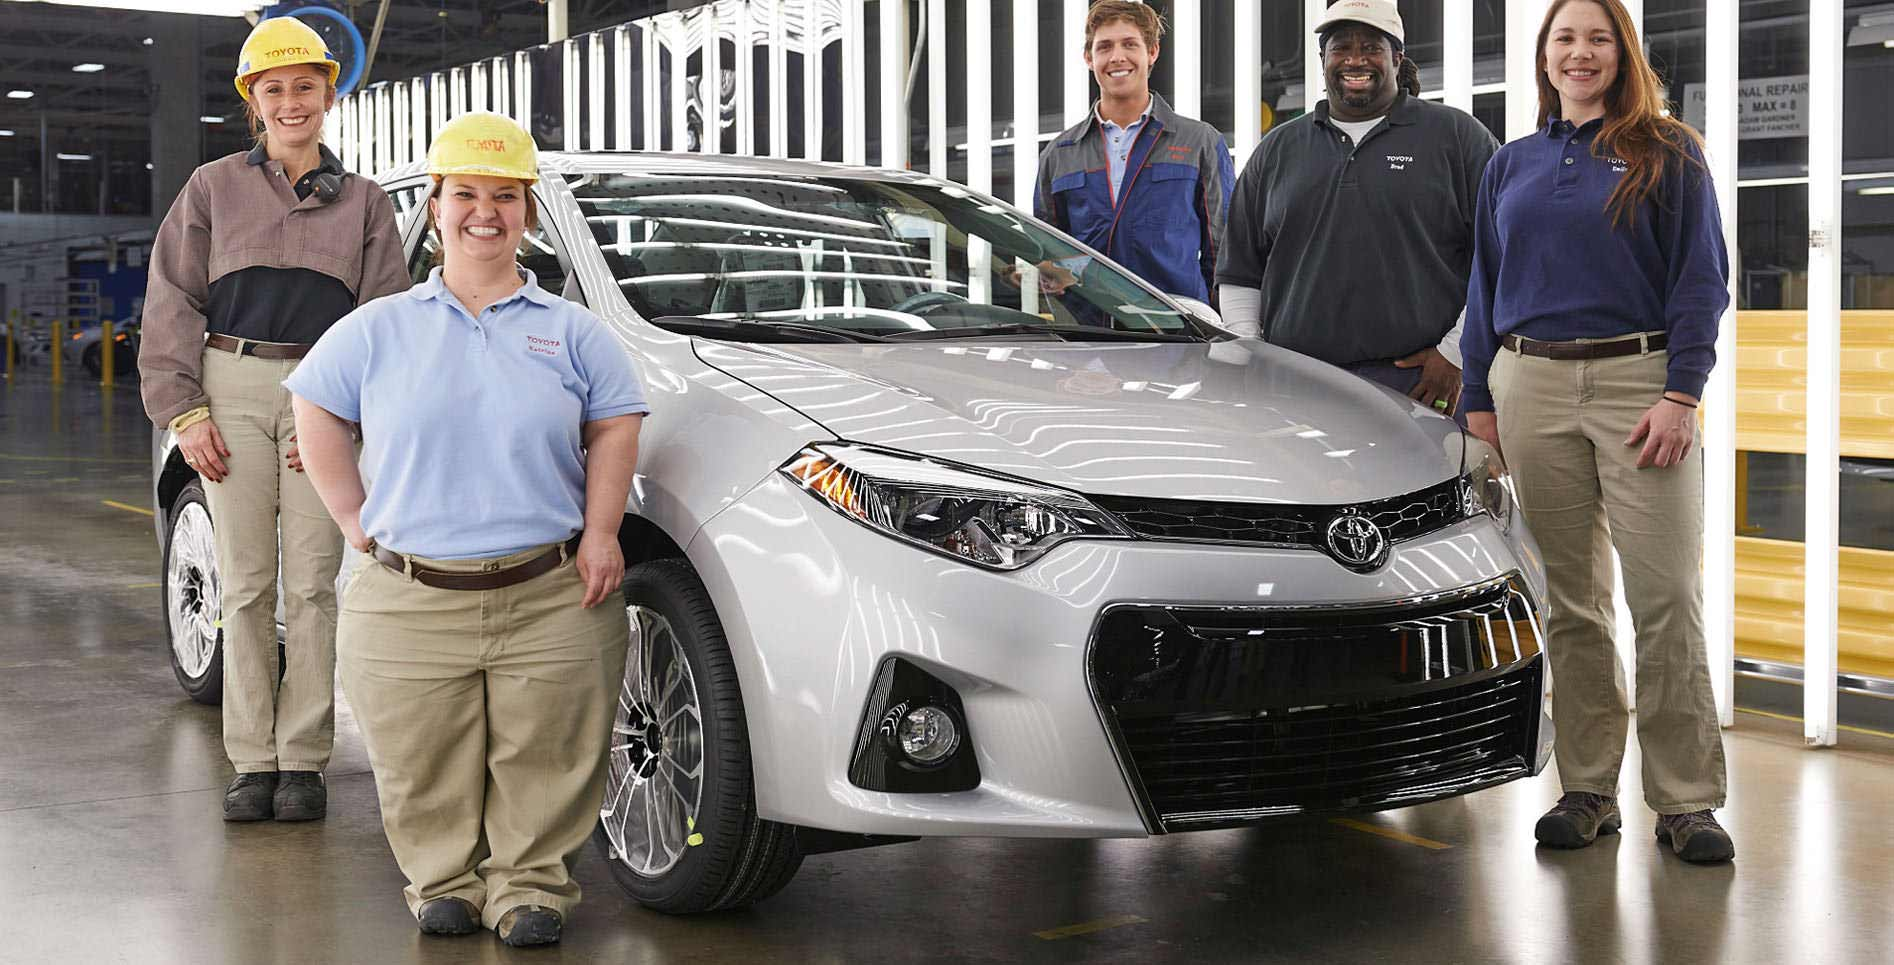 Why Hire The Certified Professionals For Toyota Service In Houston